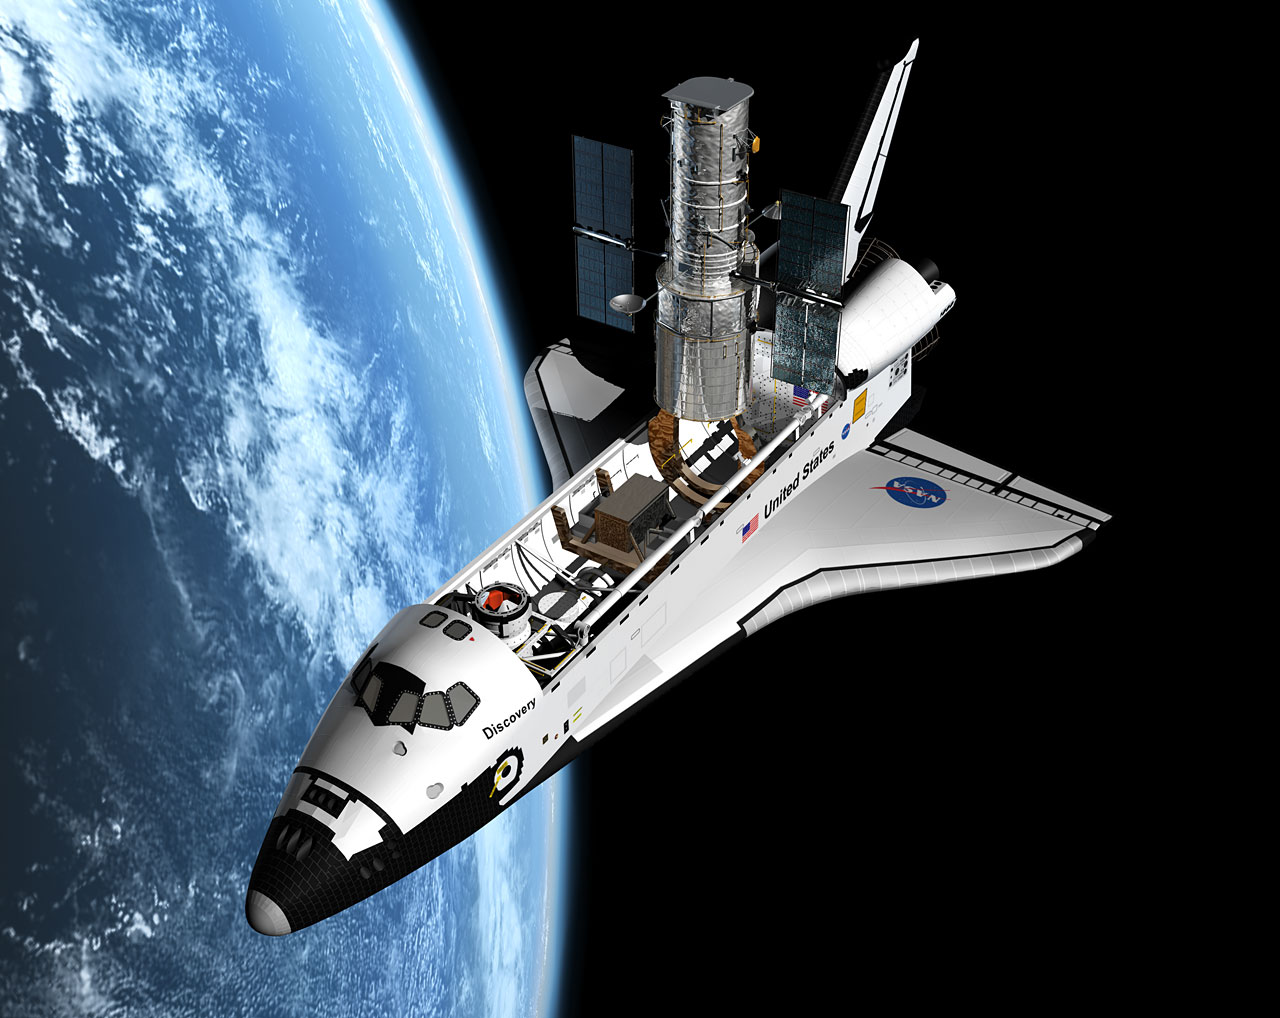 Artist's view of the Shuttle servicing mission to HST